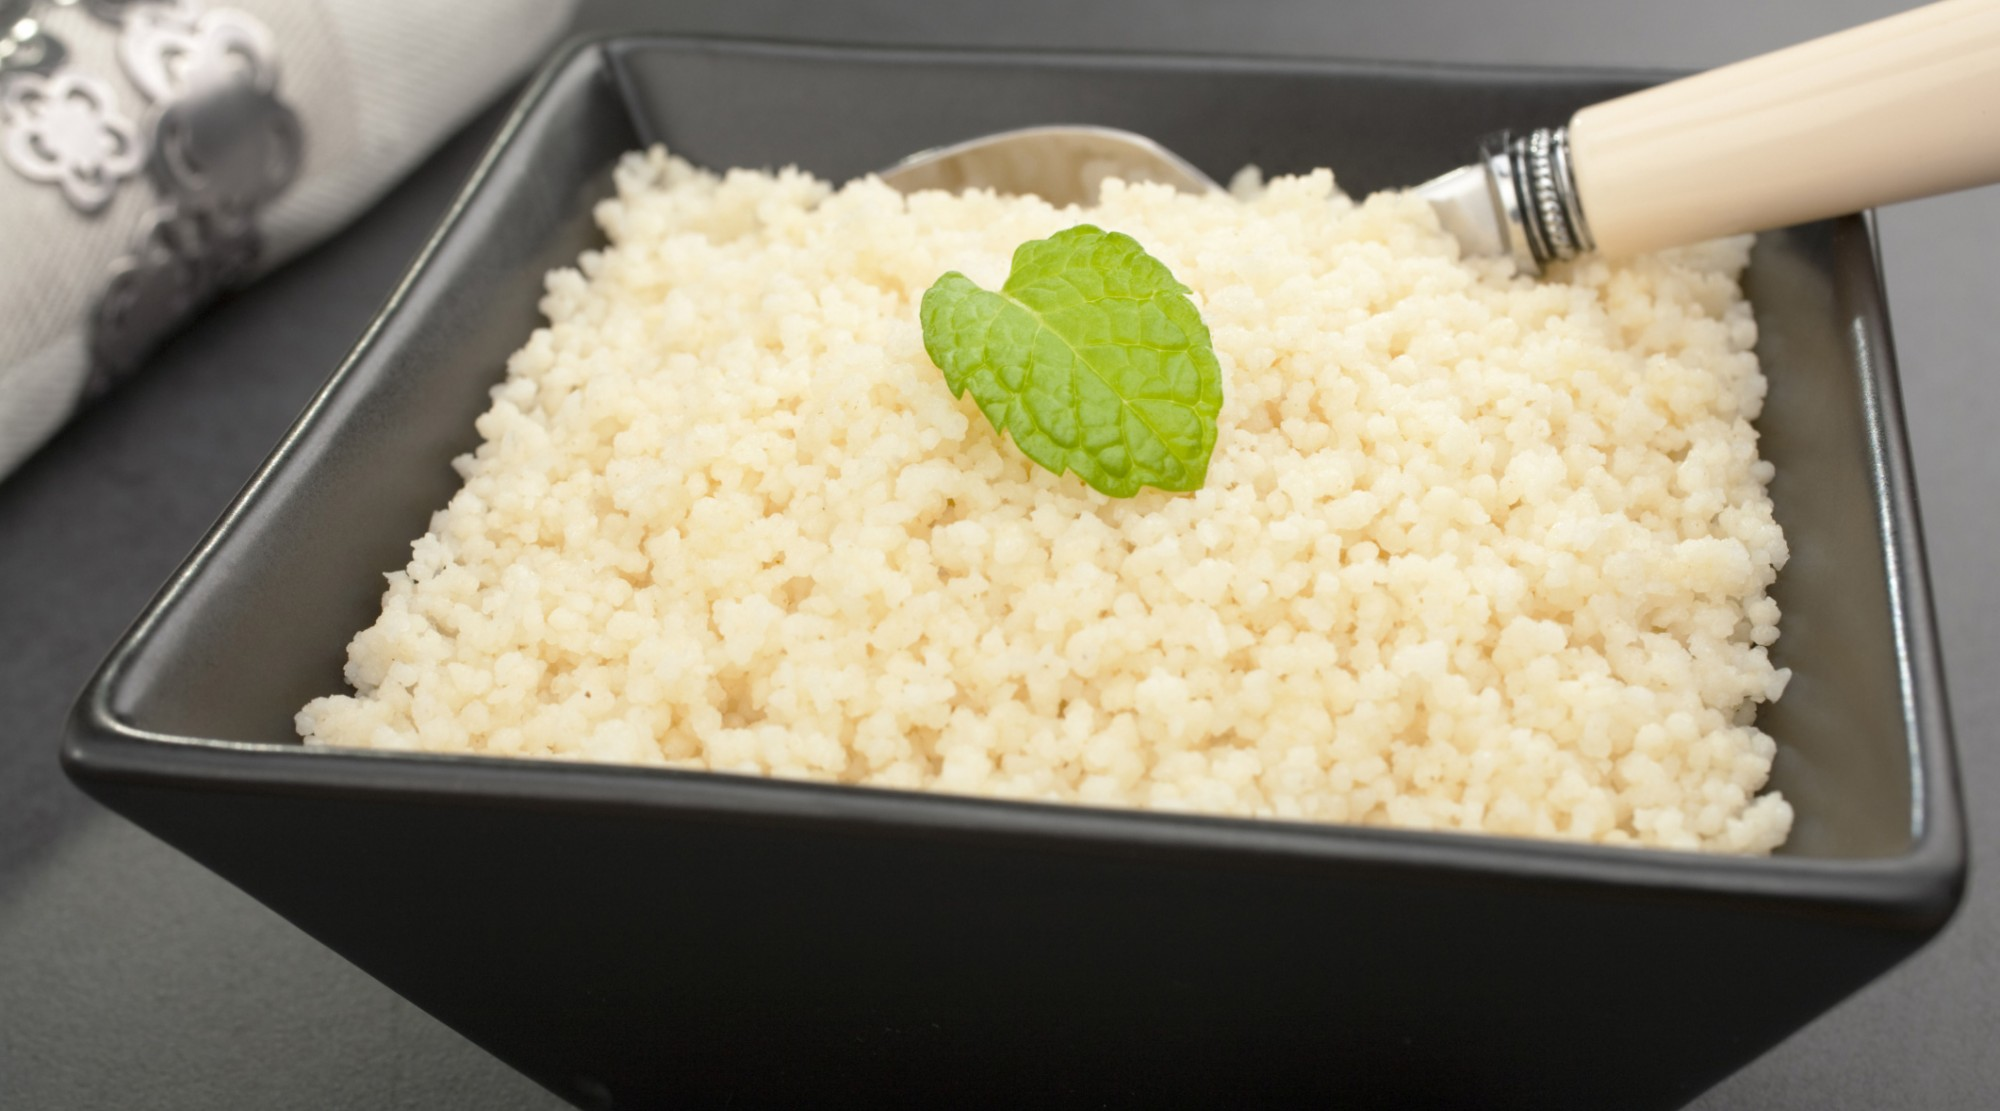 Couscous is not Gluten-Free